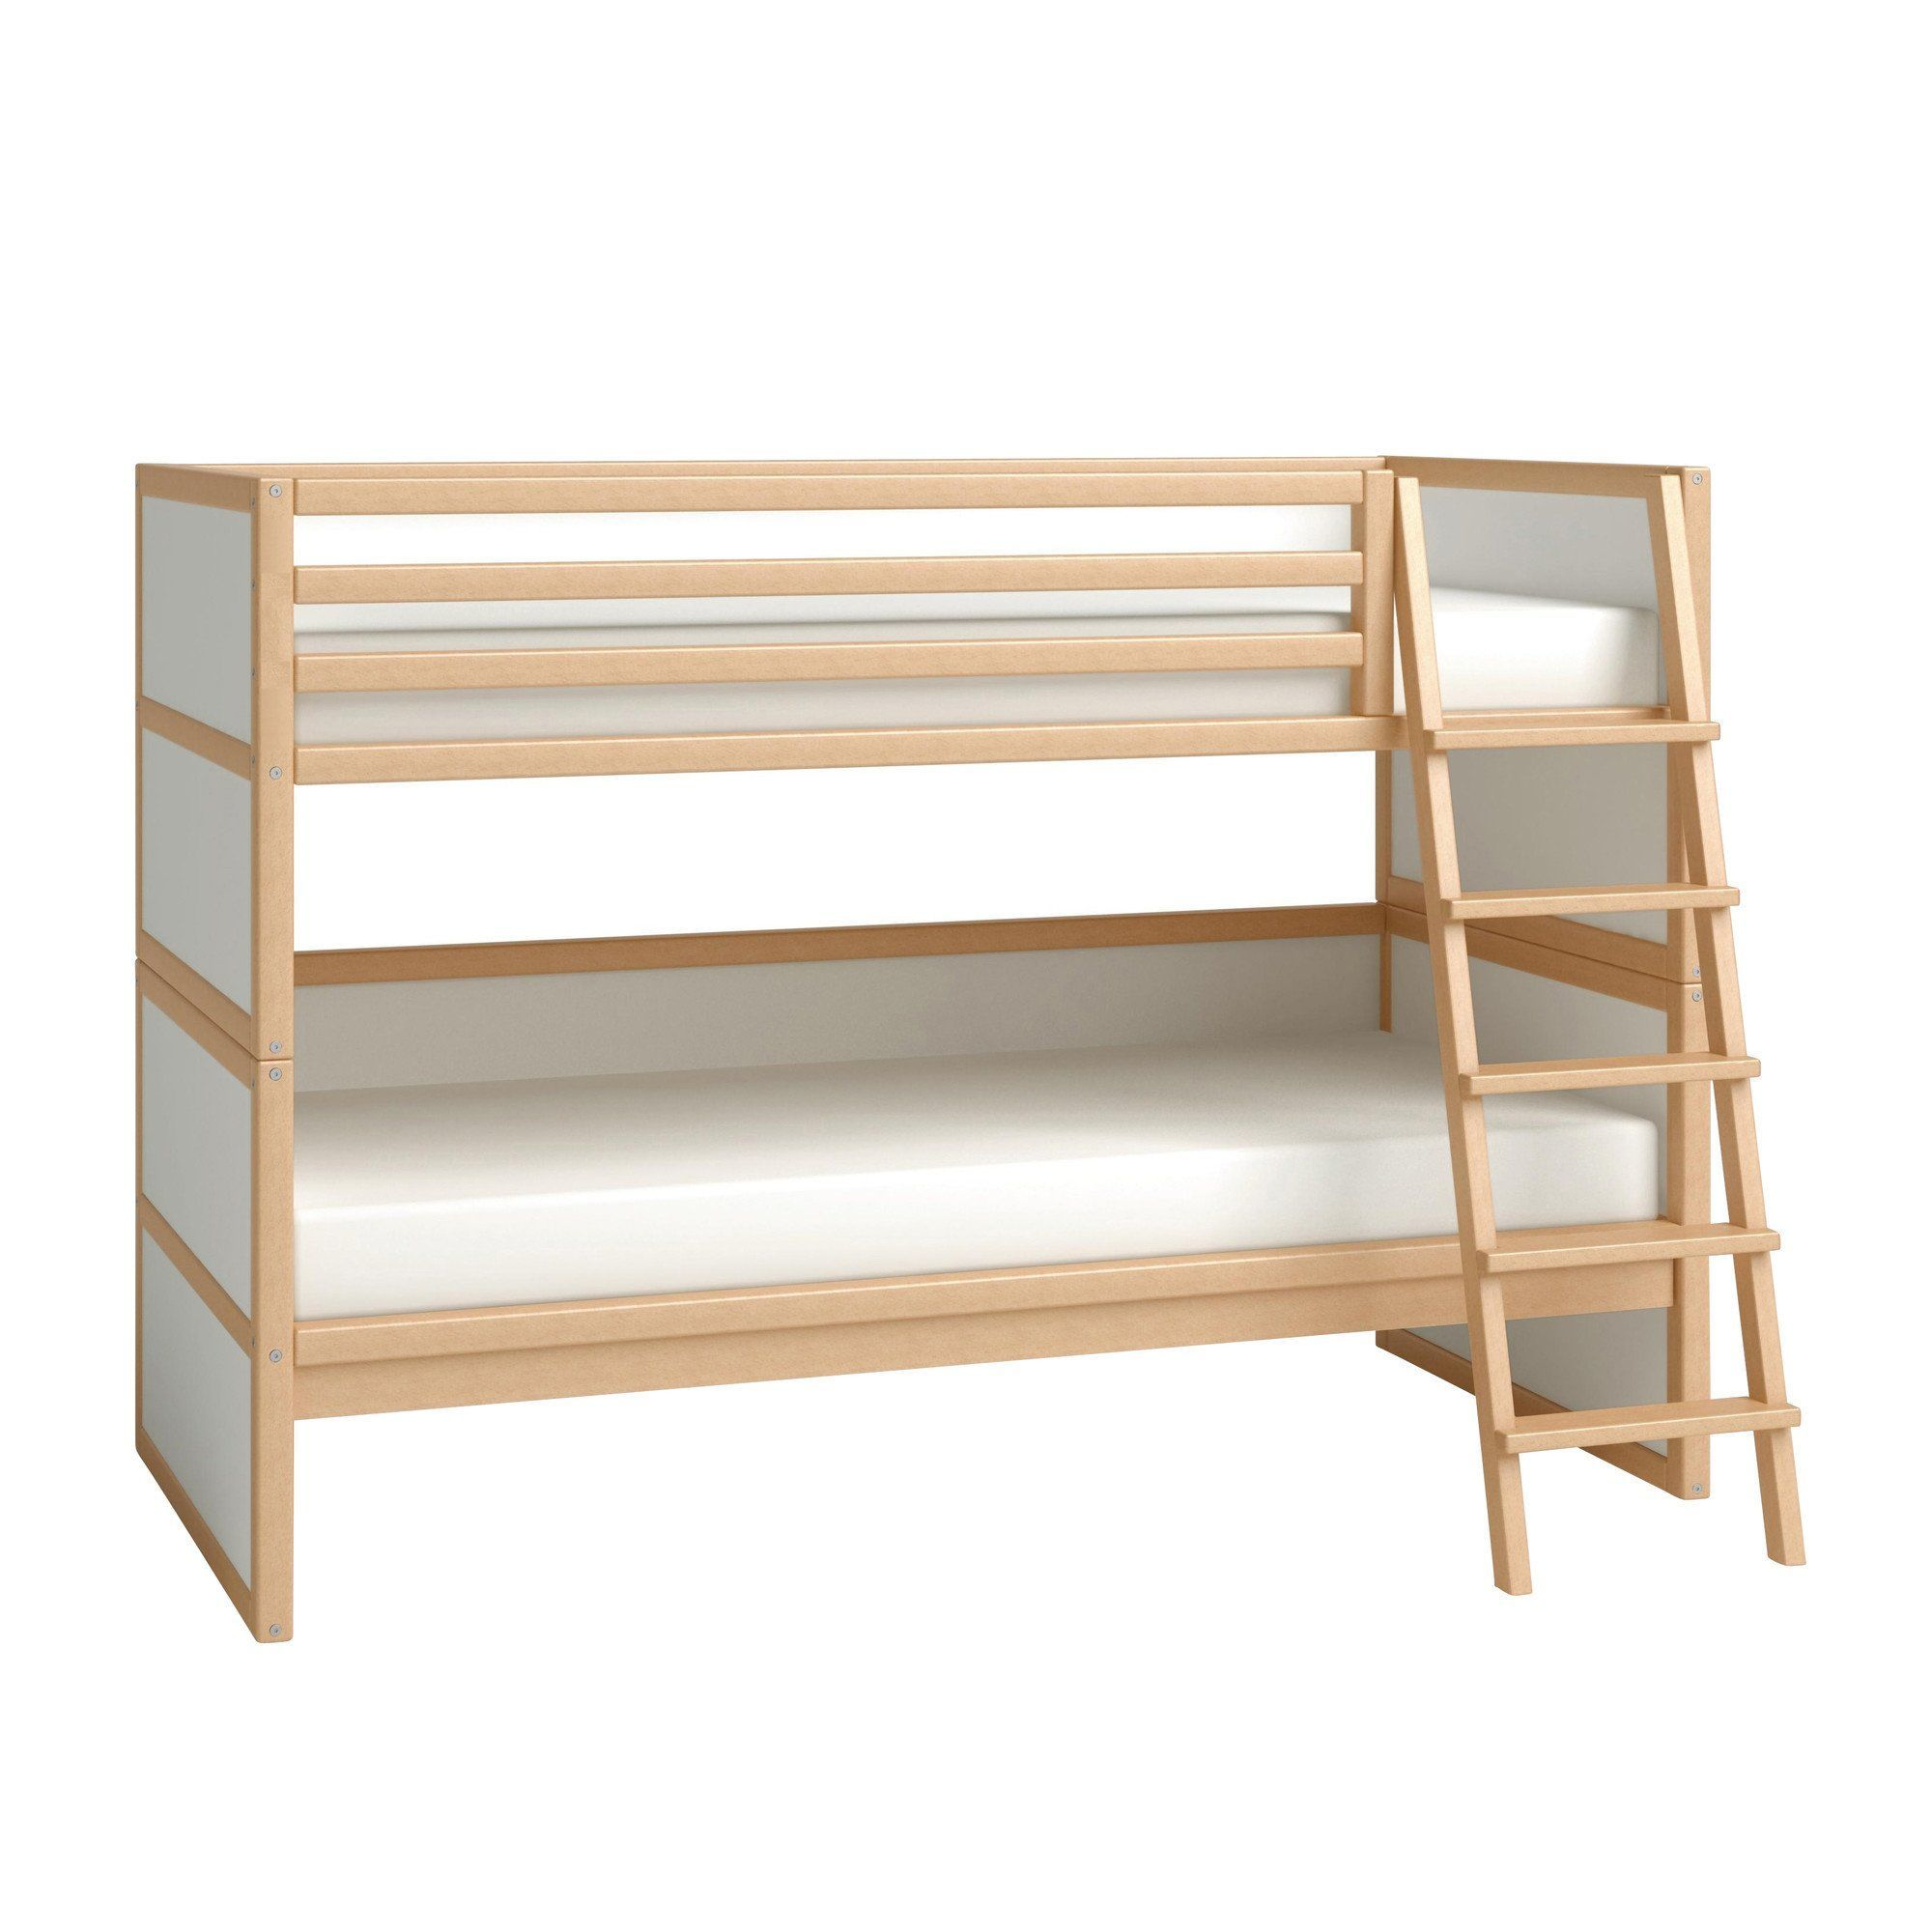 Lovely Fltotto Fltotto Profilsystem Bunk Bed Fltotto Profilsystem Bunk Bed Ambientedirect Bunk Bed Ladder Diy Bunk Bed Ladder Hooks houzz-02 Bunk Bed Ladder